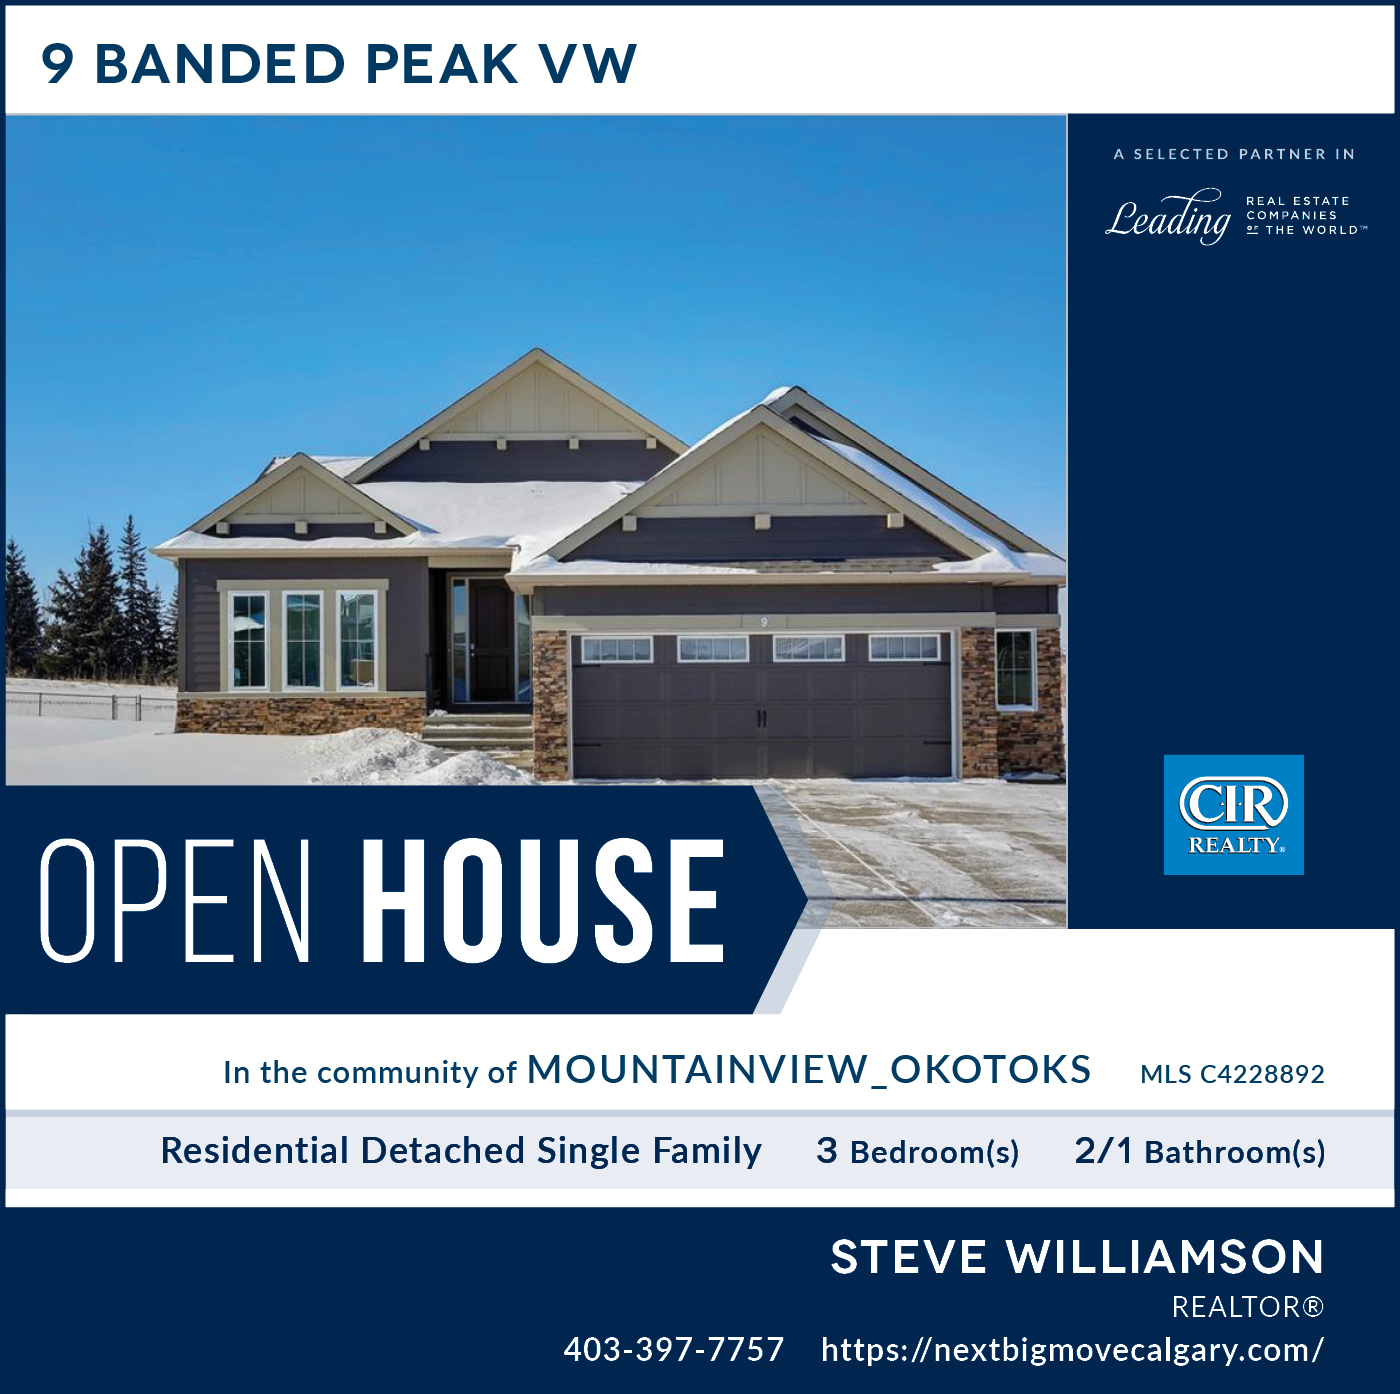 OPEN HOUSE 9 Banded Peak VW Okotoks